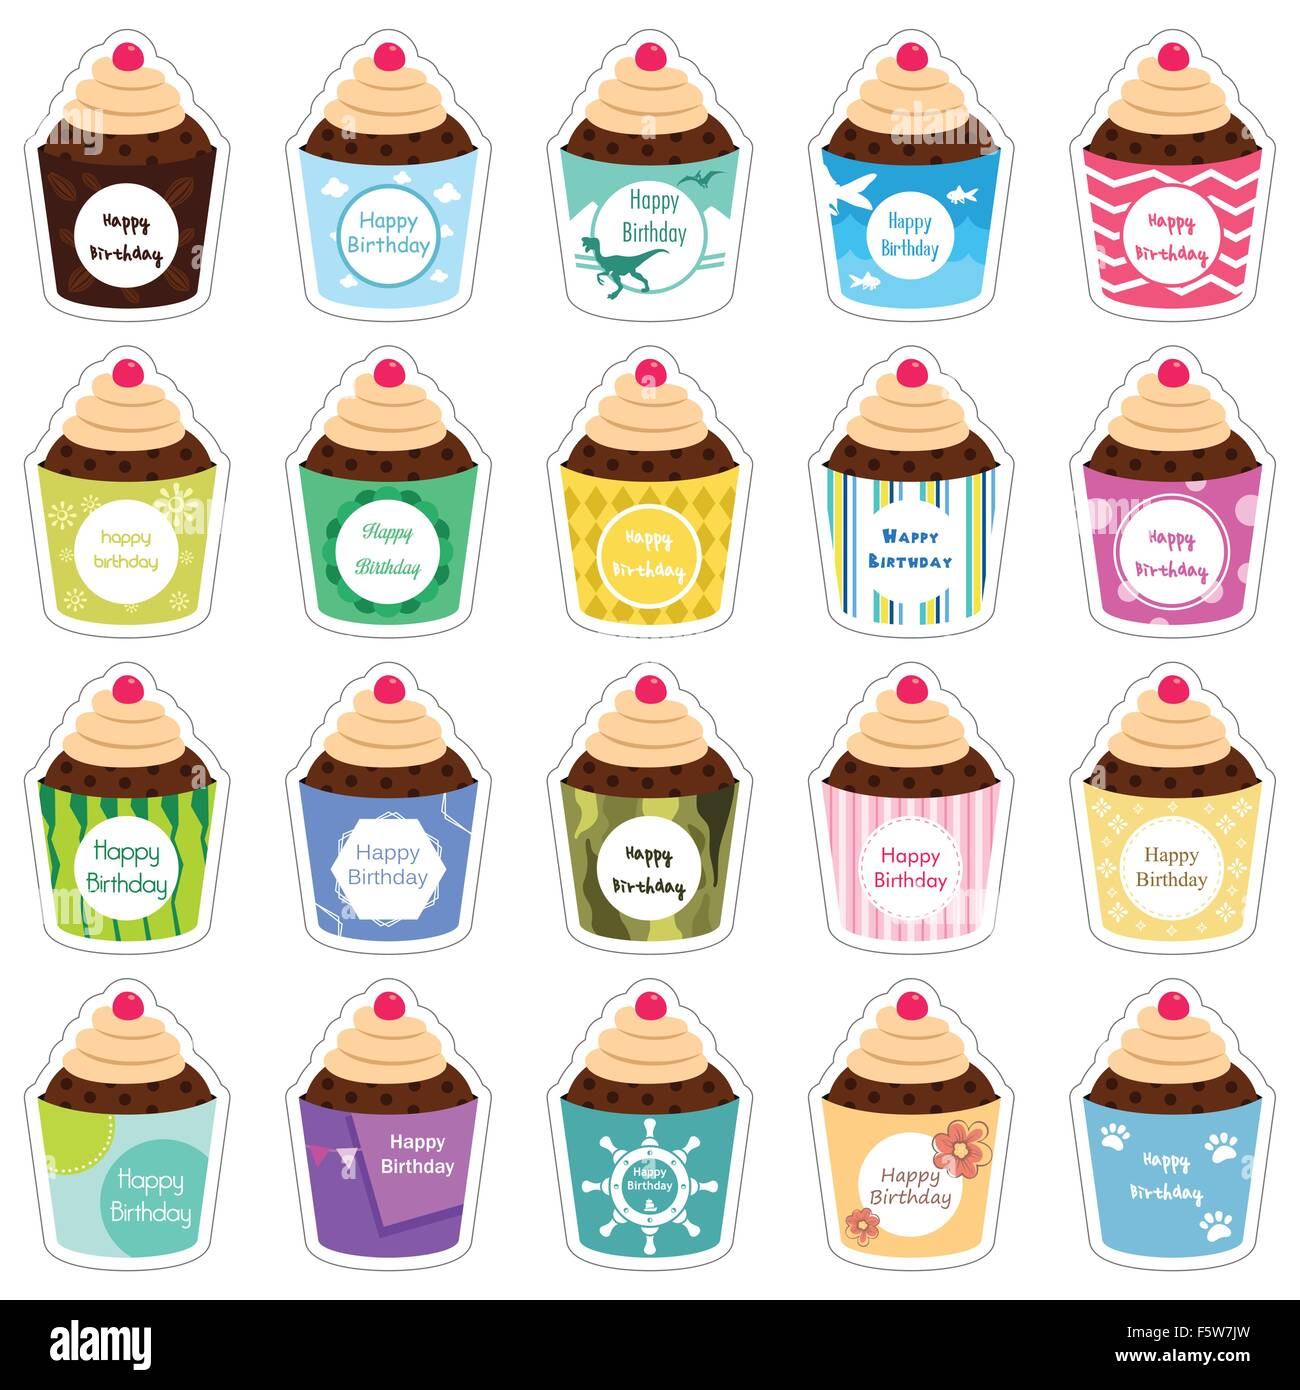 A Vector Illustration Of Birthday Cupcakes Icon Designs Stock